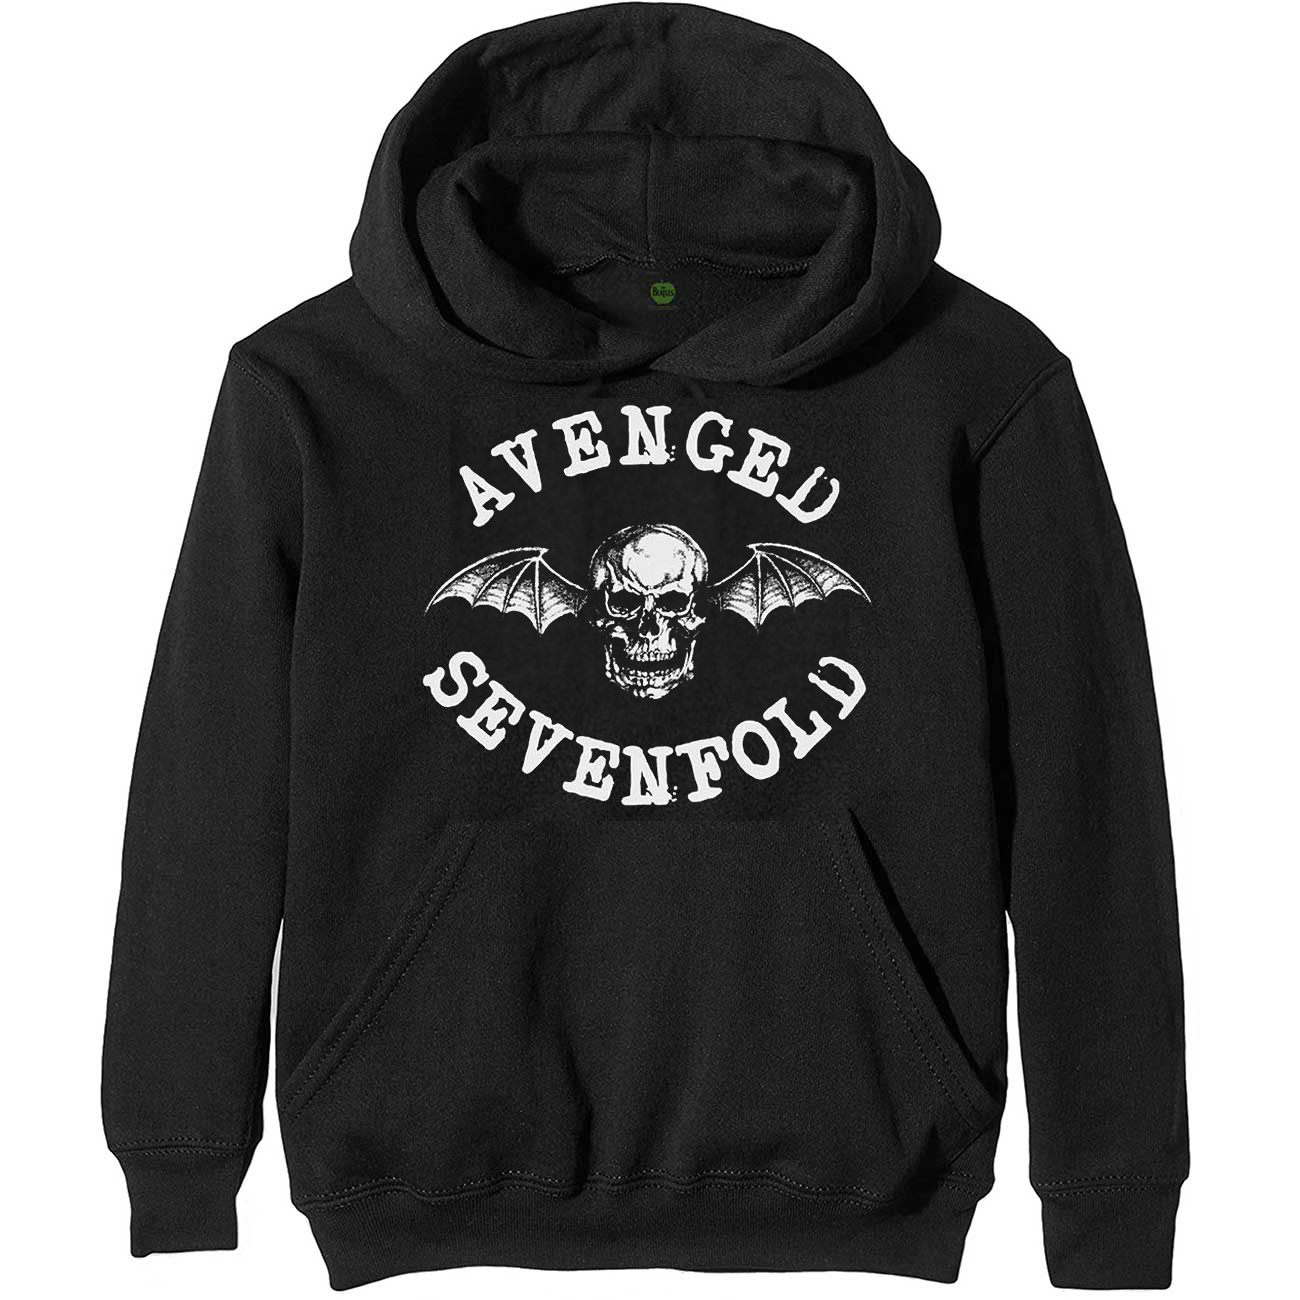 Avenged Sevenfold /'Death Bat Logo/' Pull Over Hoodie NEW /& OFFICIAL!